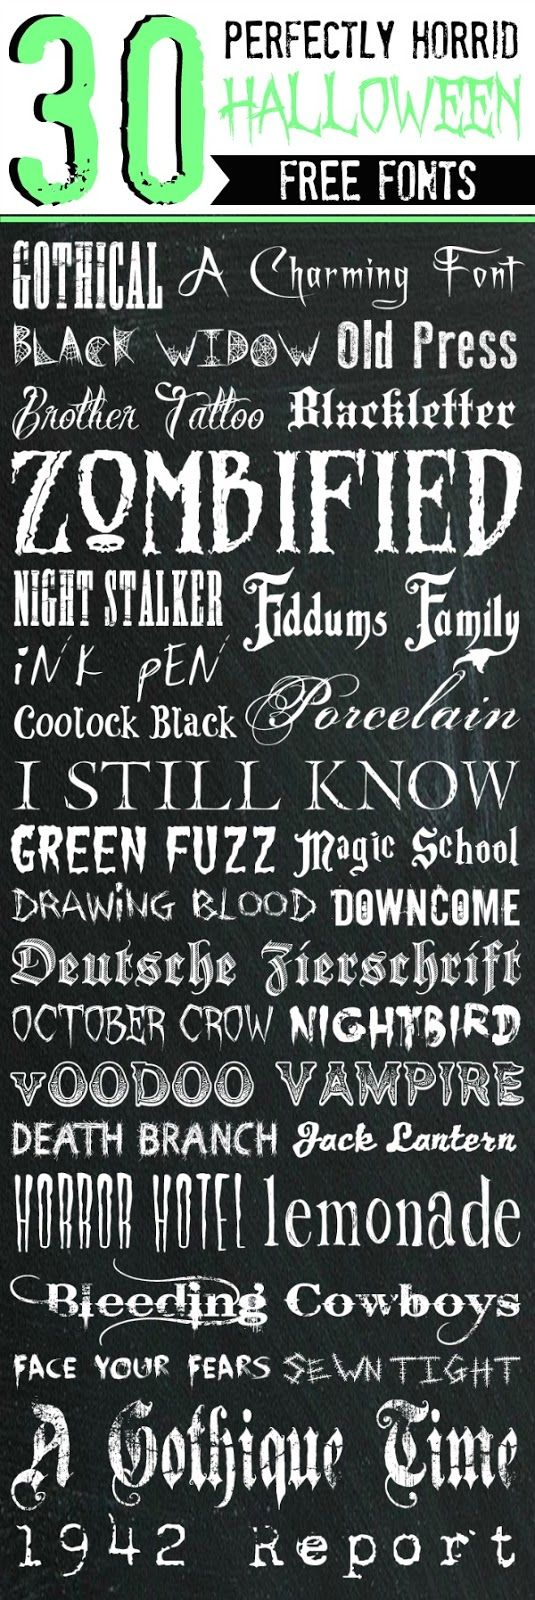 Best 25+ Halloween fonts ideas on Pinterest | Holiday fonts ...